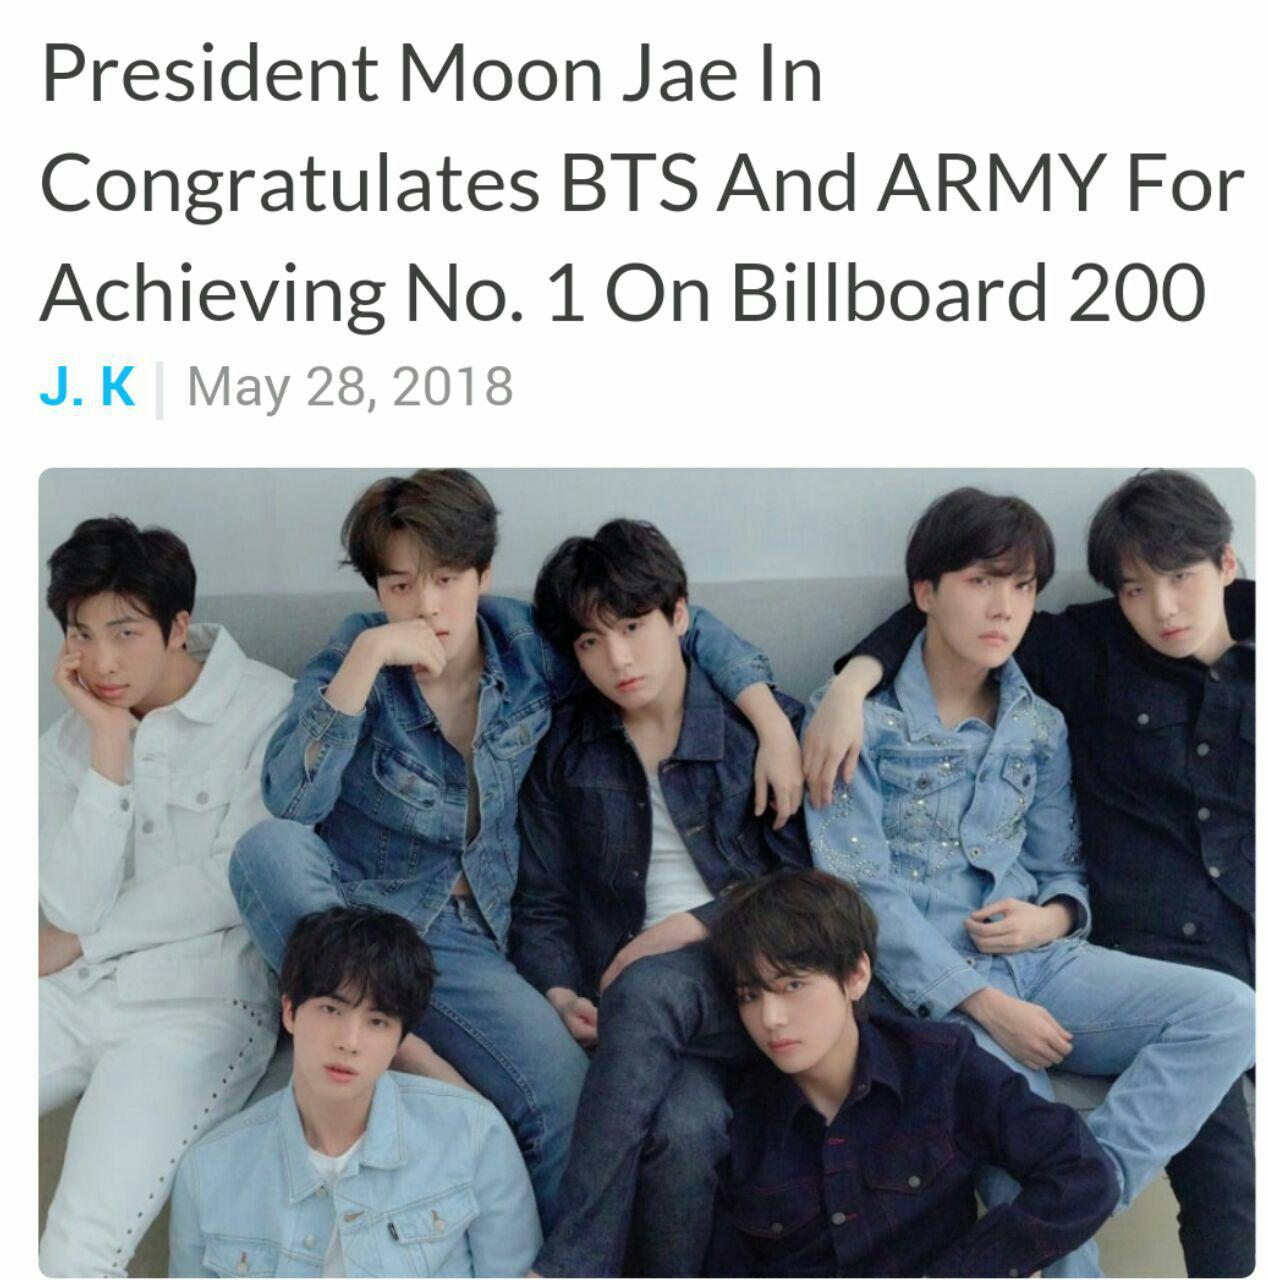 d328 photo 2018 05 28 21 41 07 - president Moon Jae in congratulates BTS amd Army for achieving No.1 On billboard 200